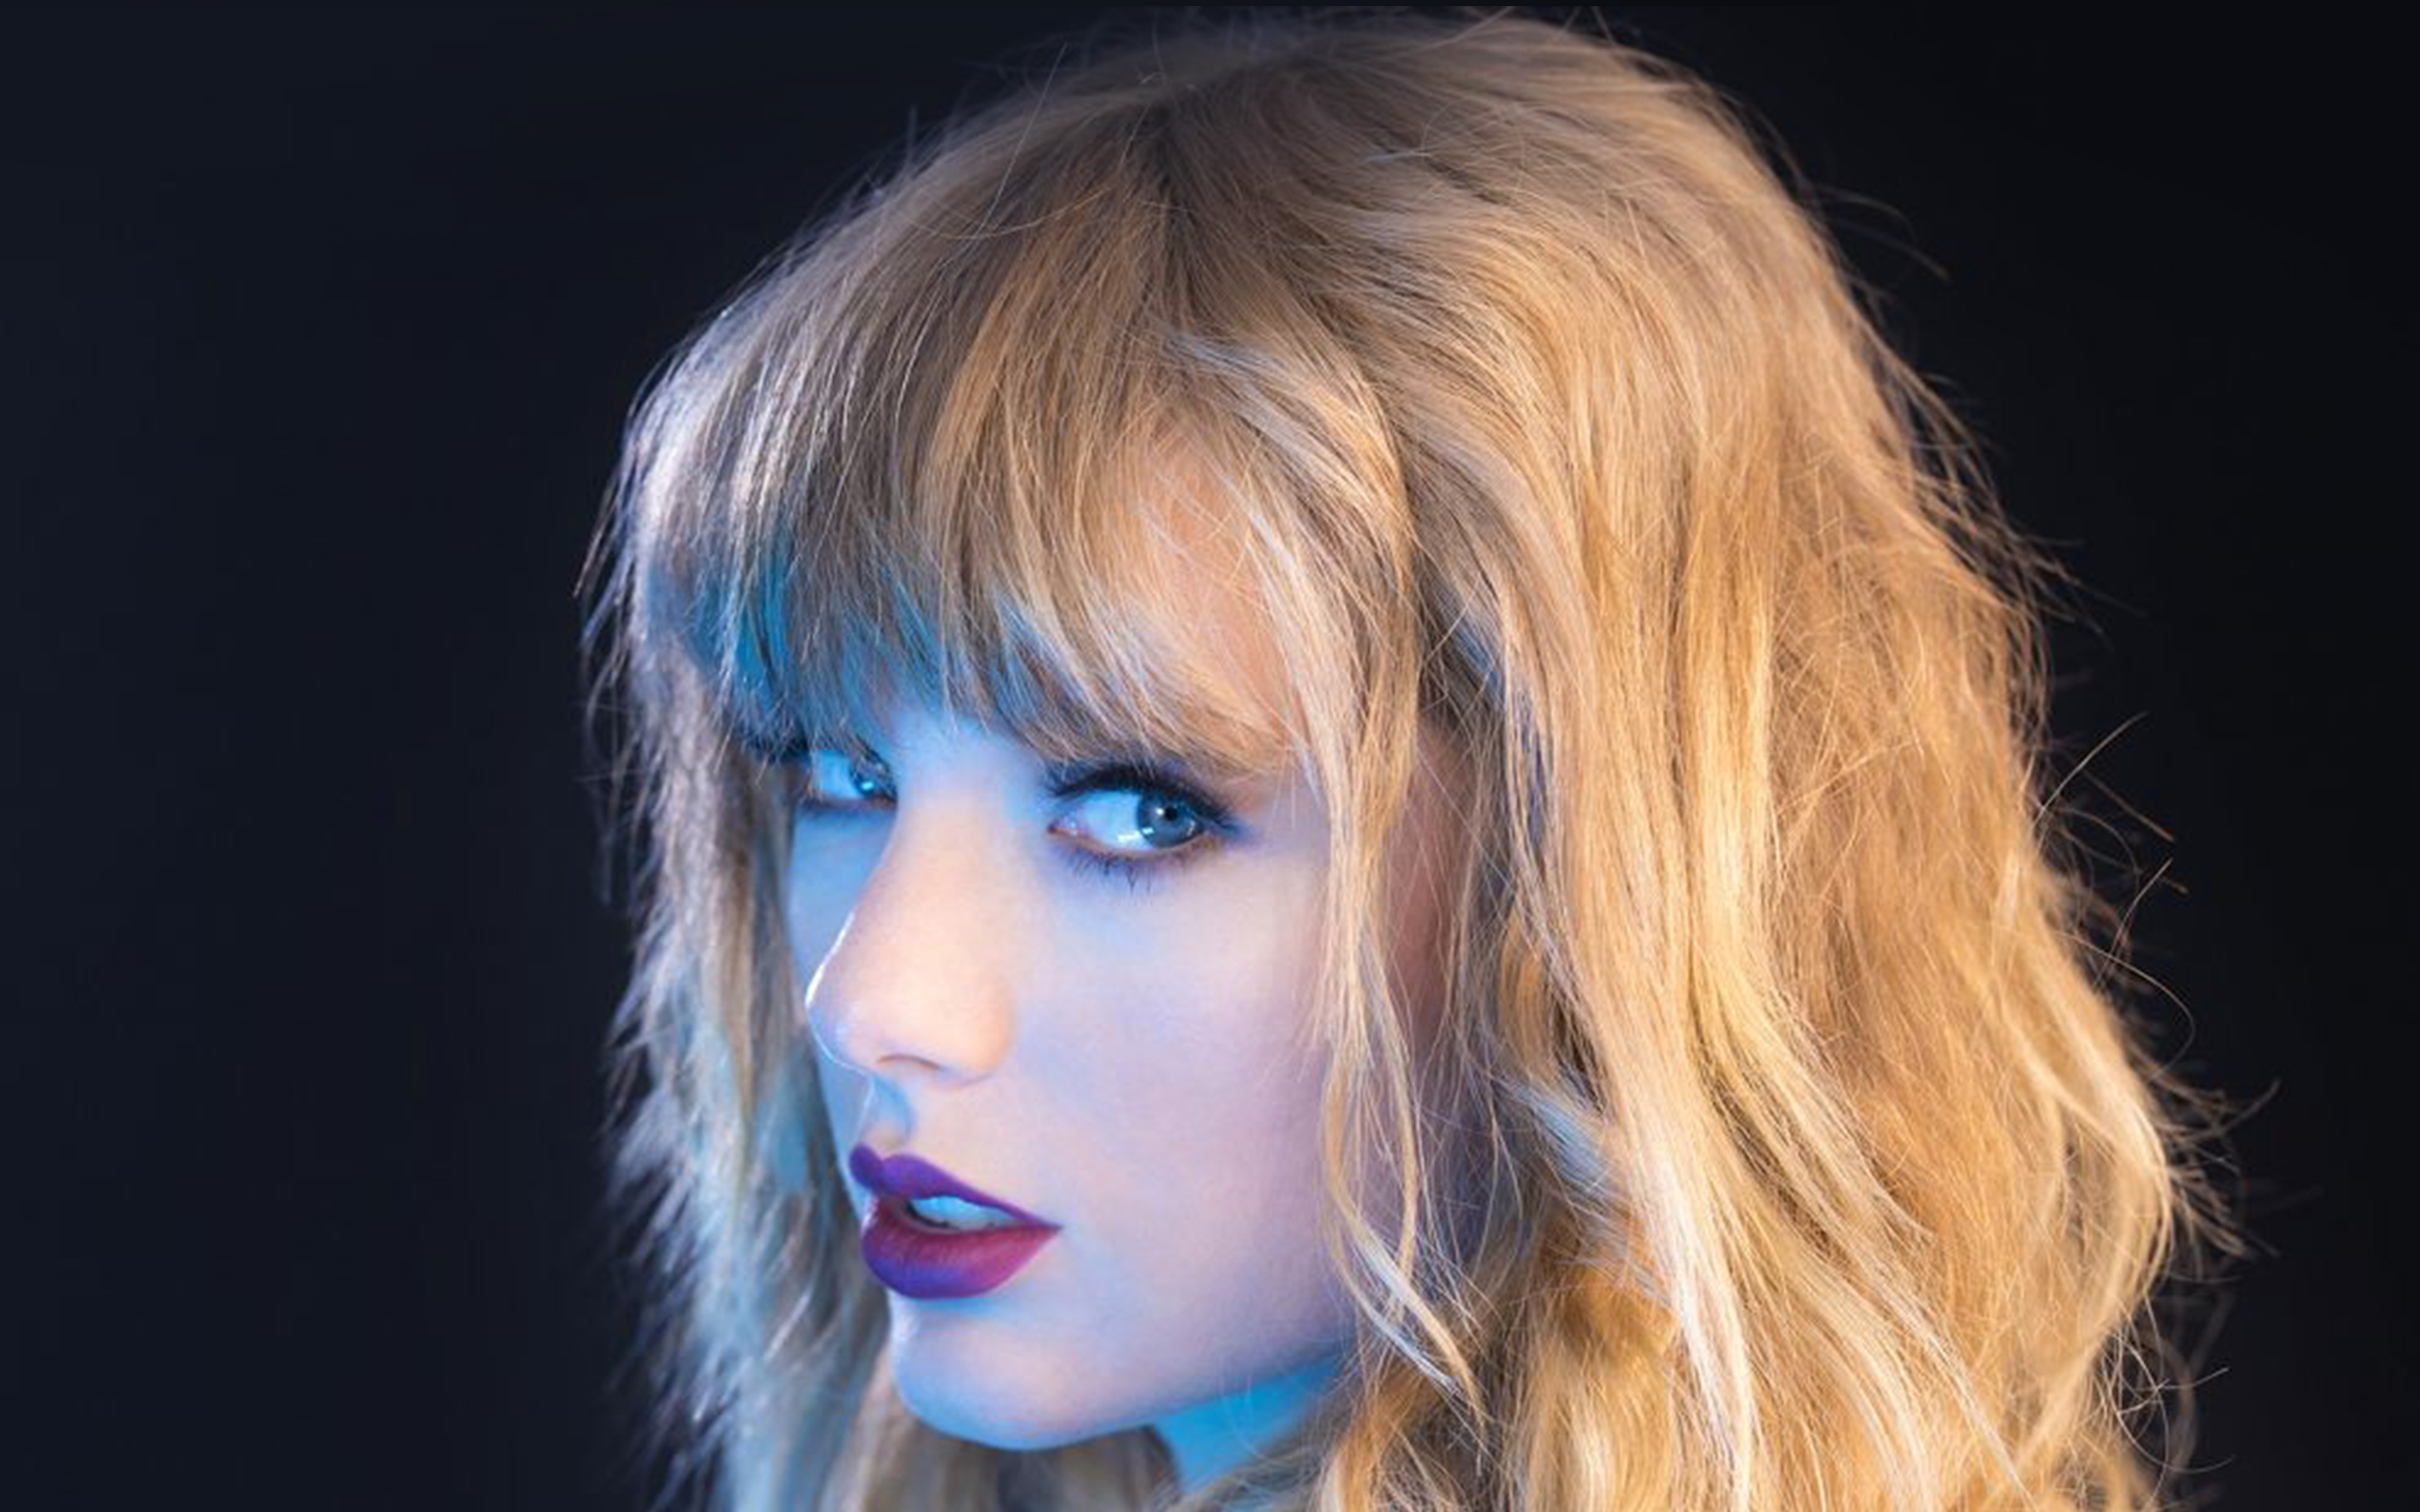 Apple Logo Iphone 5 Wallpaper Hq22 Taylor Swift Blue Sexy Singer Wallpaper